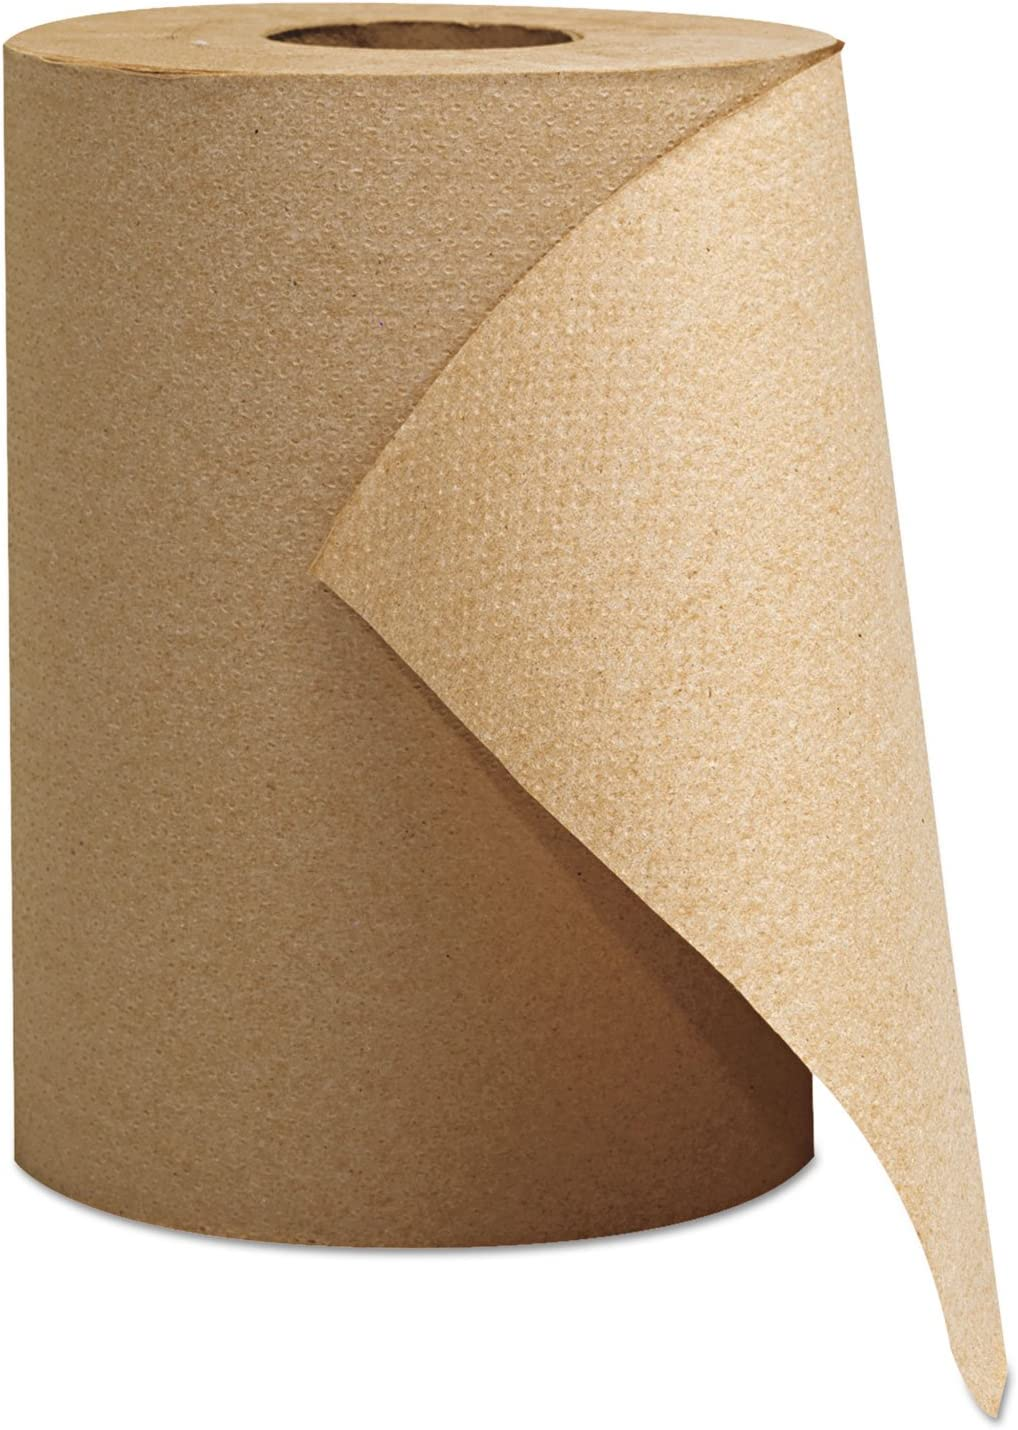 GEN1804 Hardwound Long Beach Mall Roll Towels Mail order cheap 1-Ply 7.875quot; ft 300 Brown x